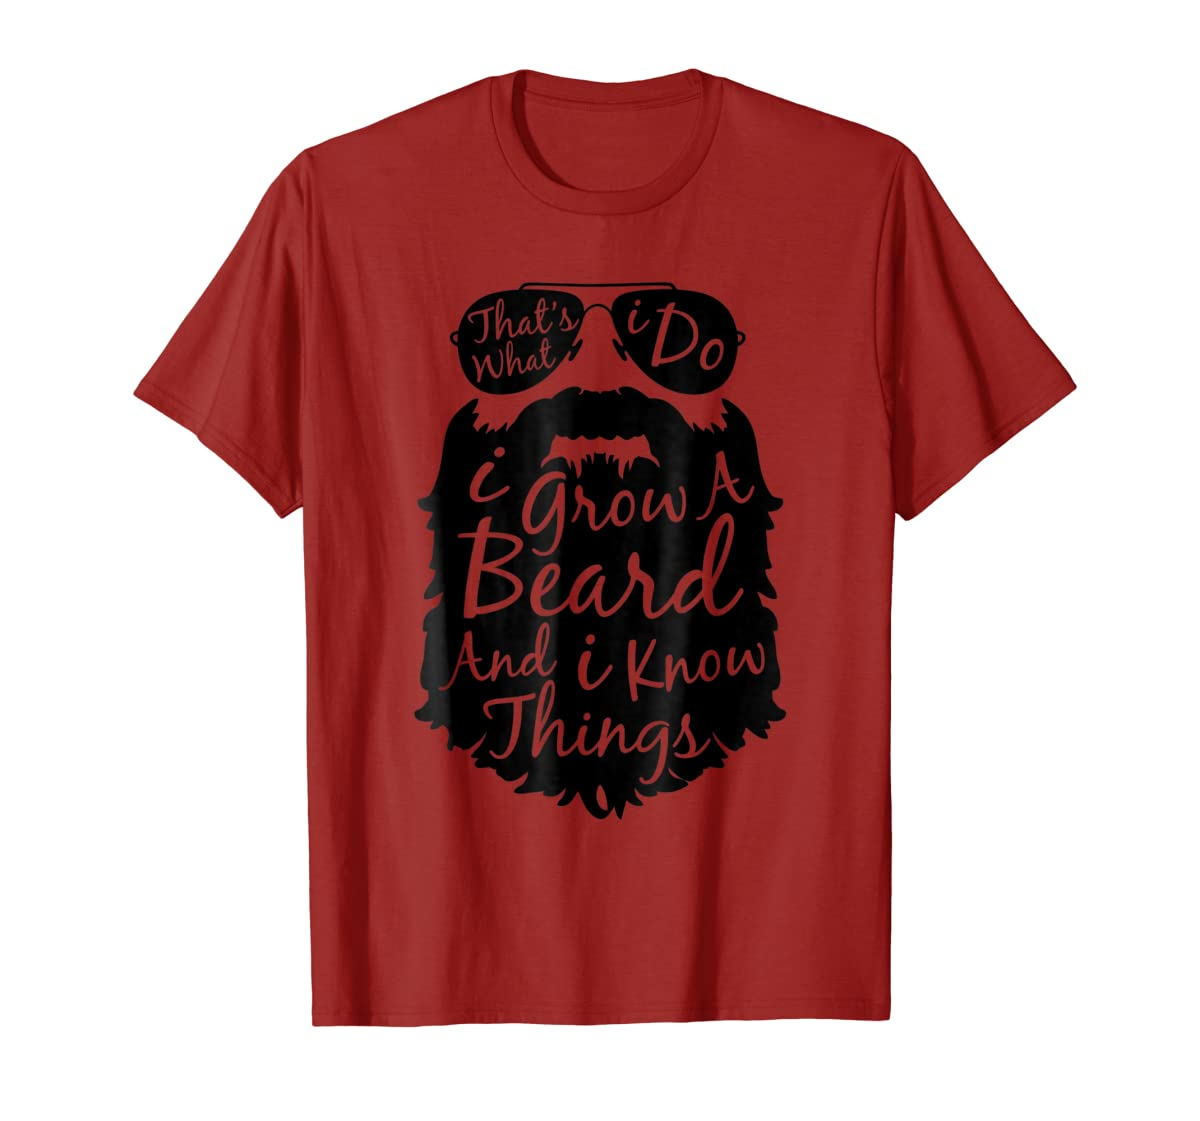 Thats what I do I grow a beard and I know things t shirt-Men's T-Shirt-Red